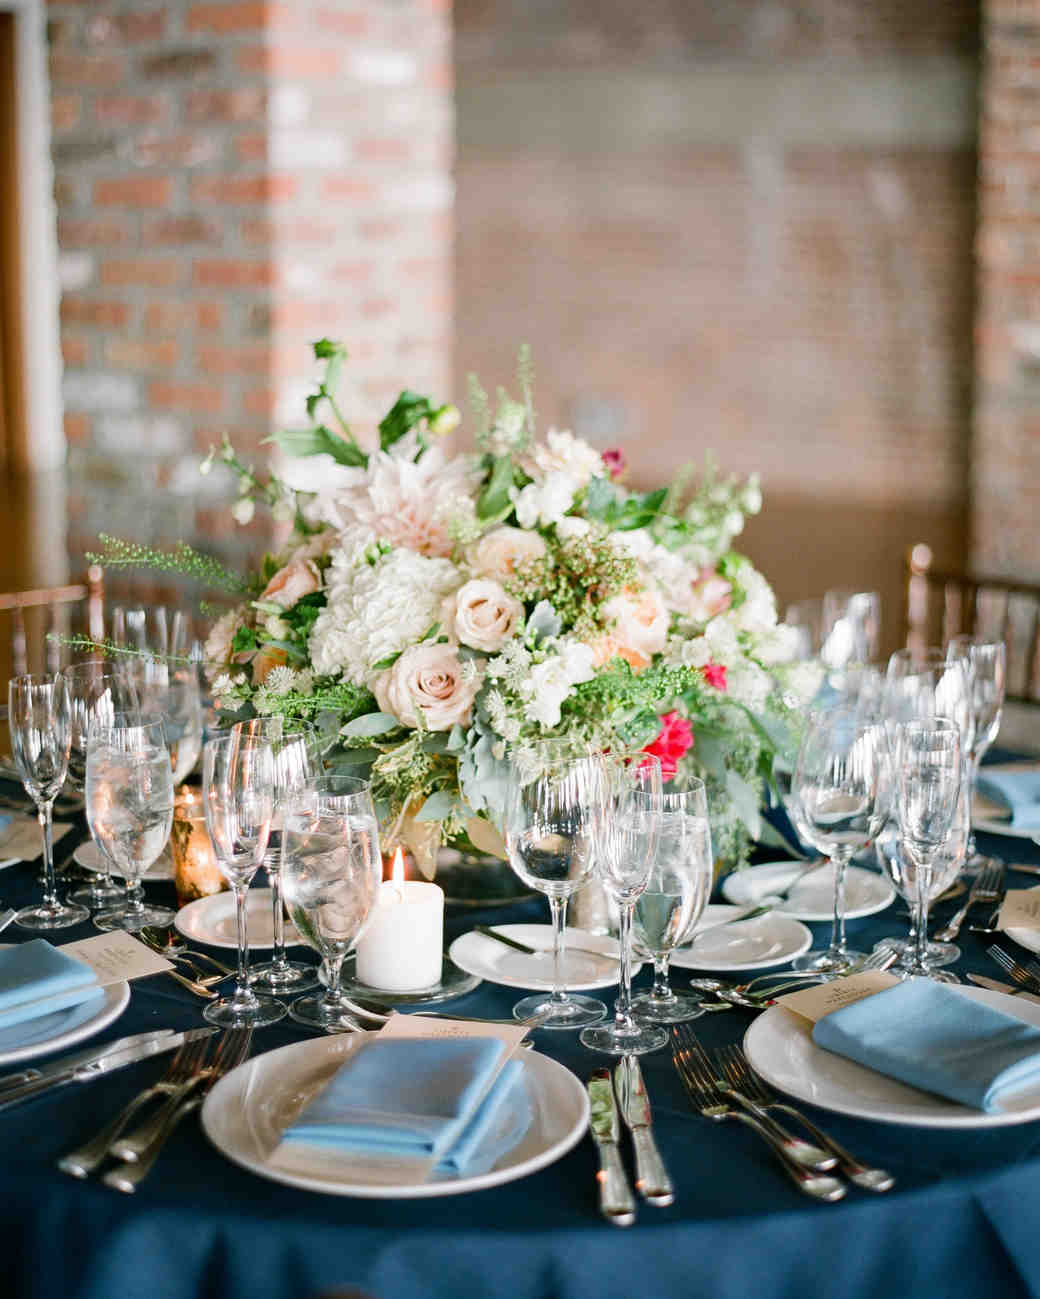 Wedding Tables Ideas: 75 Great Wedding Centerpieces